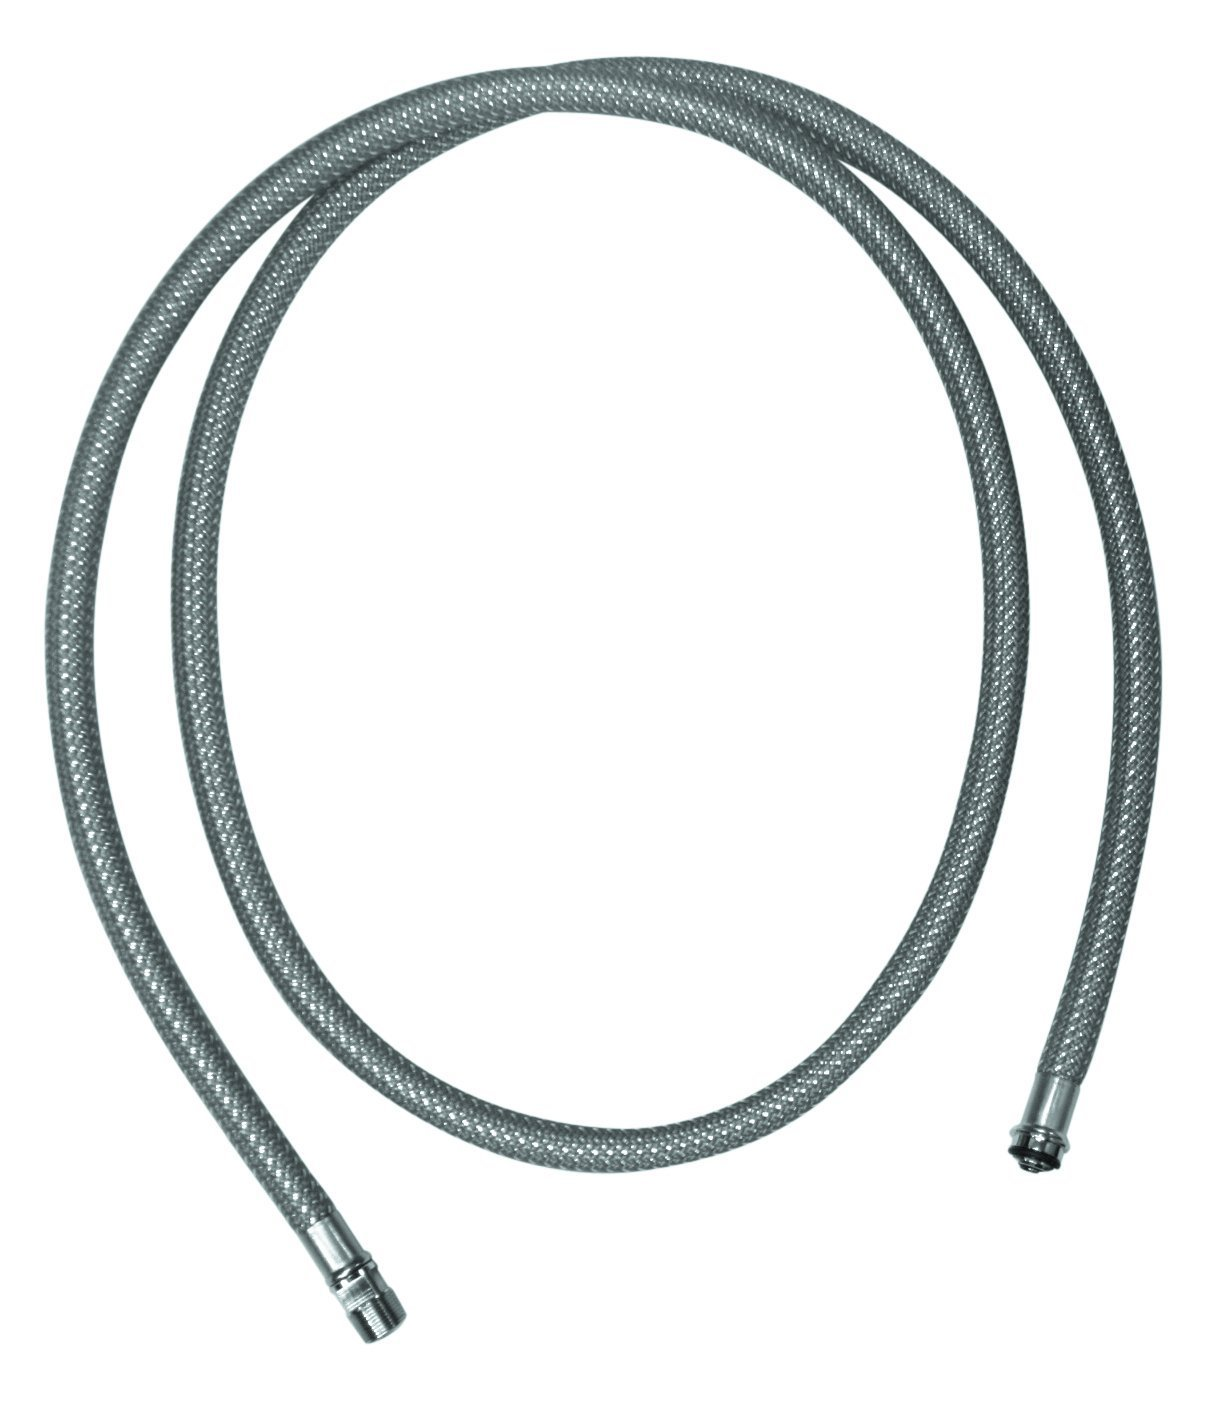 HP PartList in addition BXVsbGlvbg furthermore 17 Pivot Shower Door Replacement Parts additionally P 0900c15280038482 also Hansgrohe 88624000 Pull Down Kitchen Faucet Hose p 216069. on window hardware replacement parts